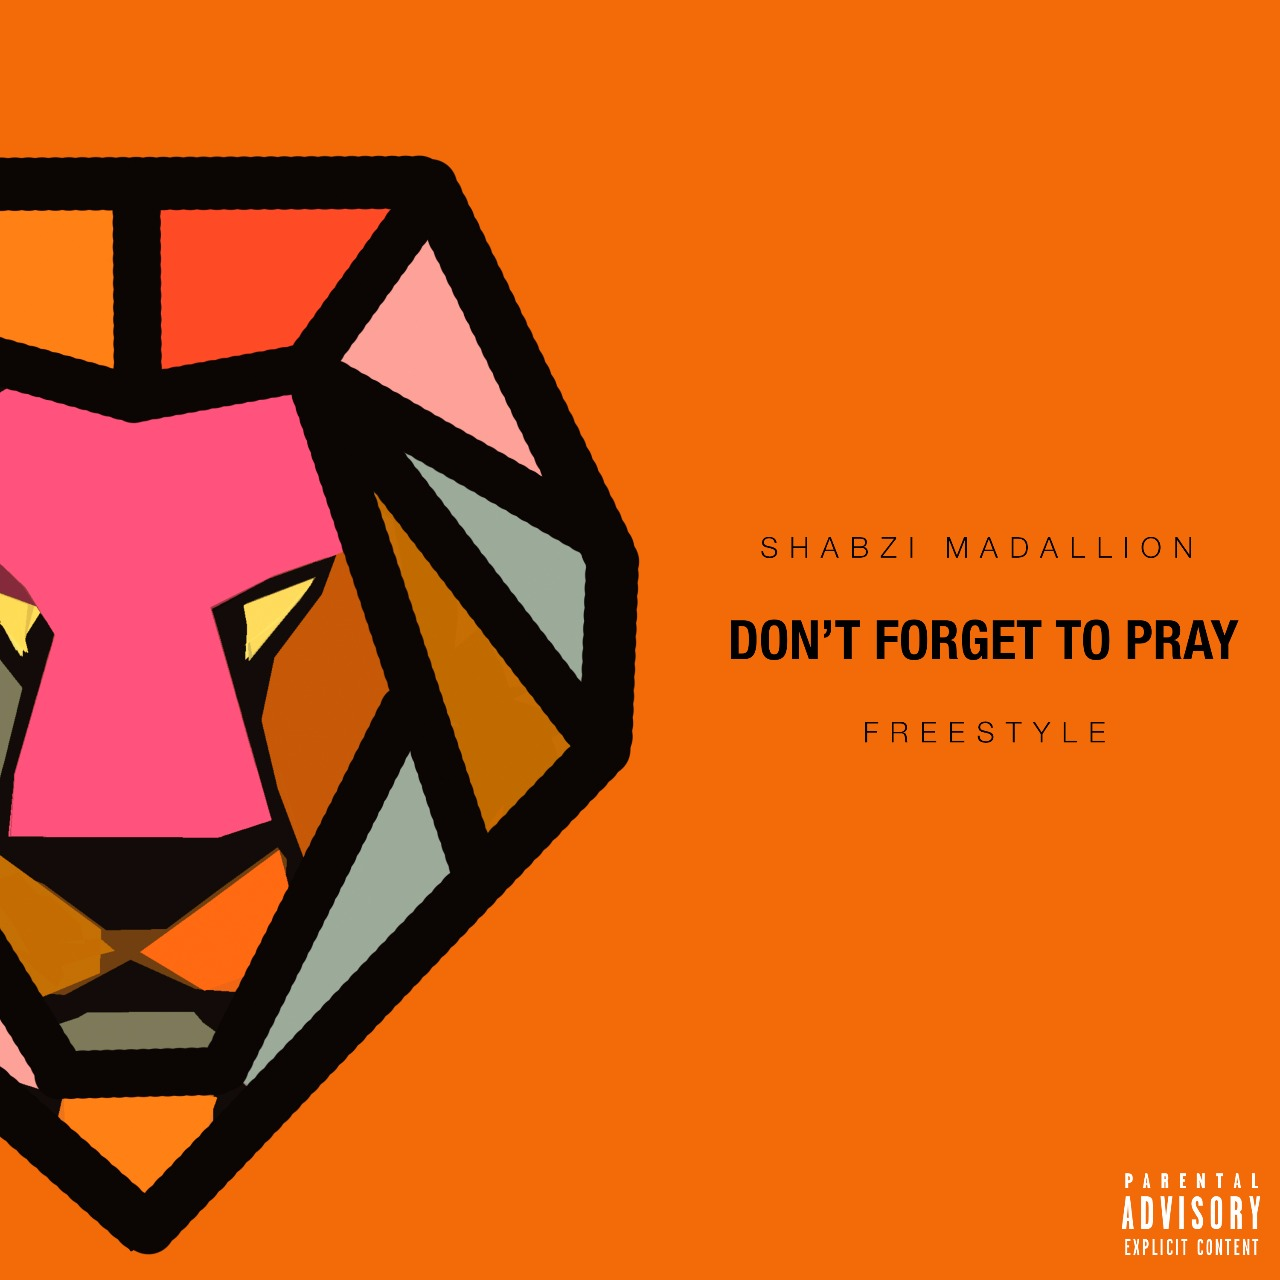 shabzi madallion ShabZi Madallion Drops New 'Don't Forget To Pray' Freestyle [Listen] ShabZi Madallion